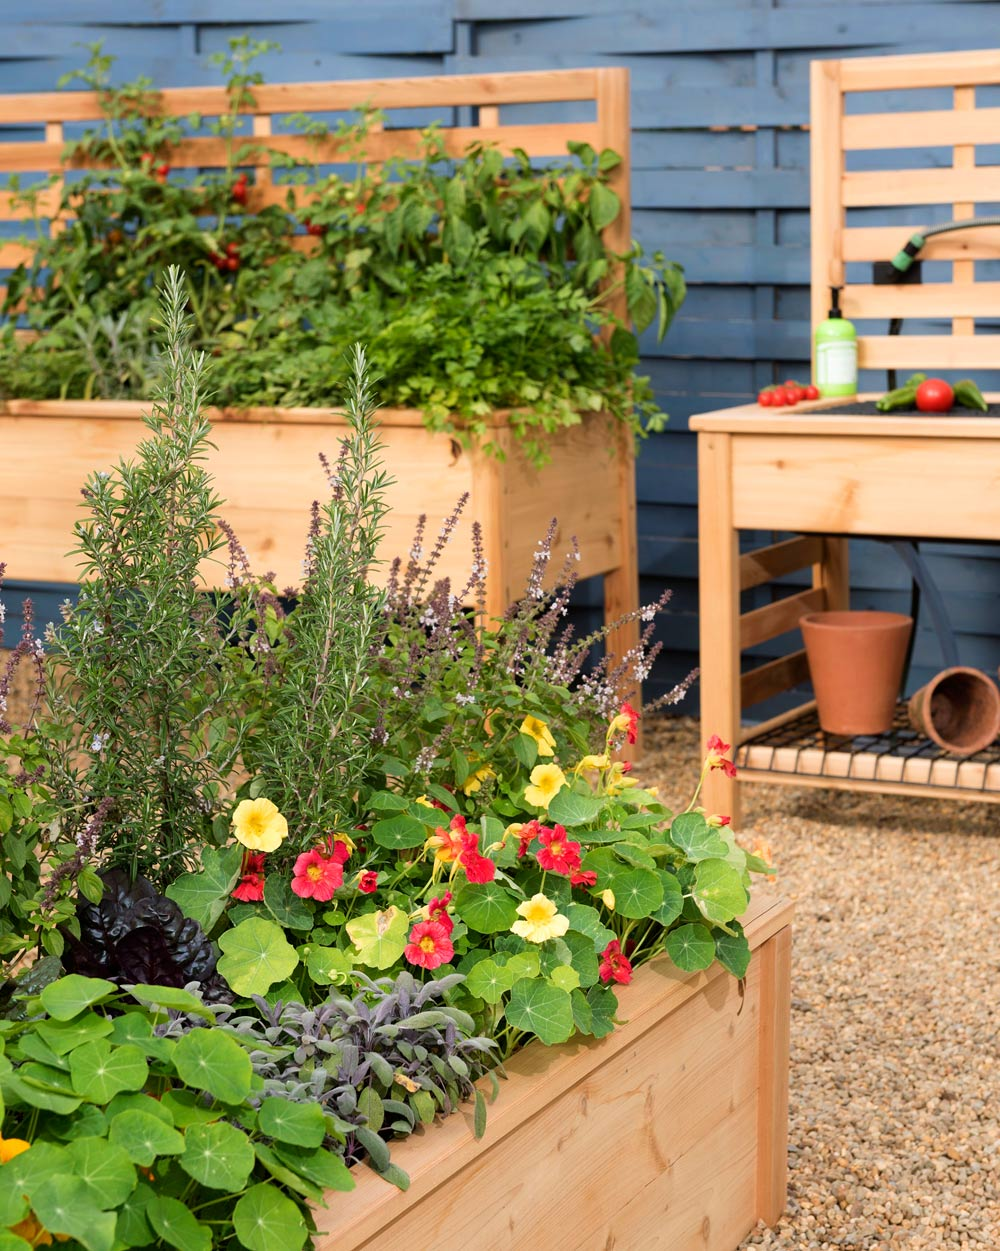 Raised Beds And Multipurpose Potting Benches Can Add Both Beauty And  Functionality To Your Patio Or Deck.